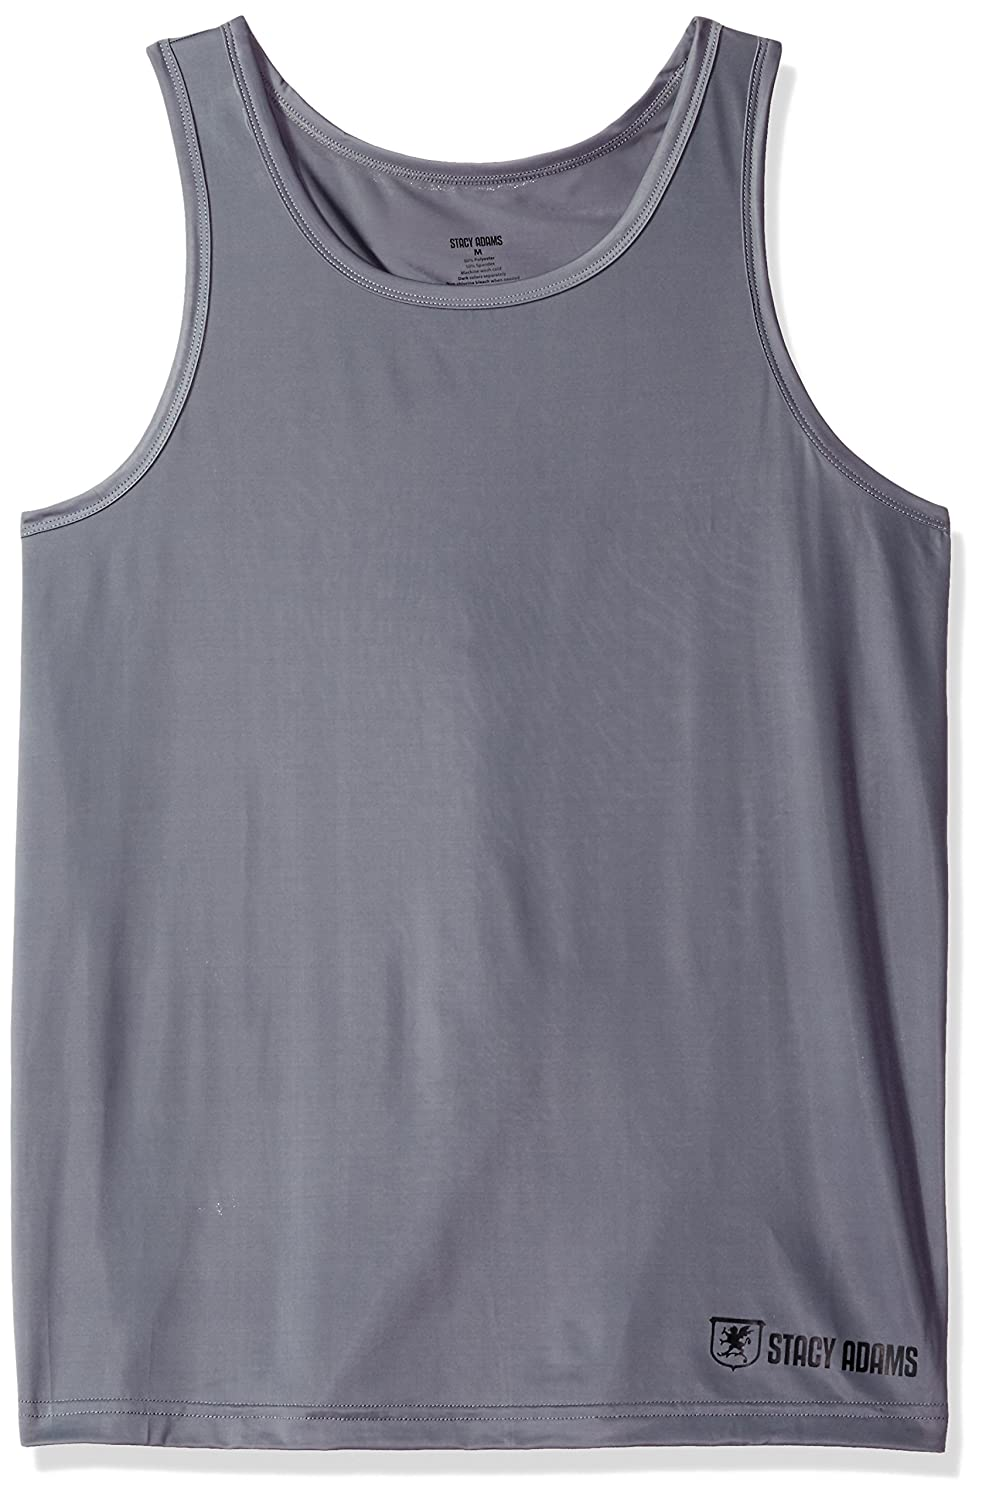 Stacy Adams Hombres Stacy Adams Mens Regular Tank Top Parte superior de pijama : Amazon.es: Ropa y accesorios